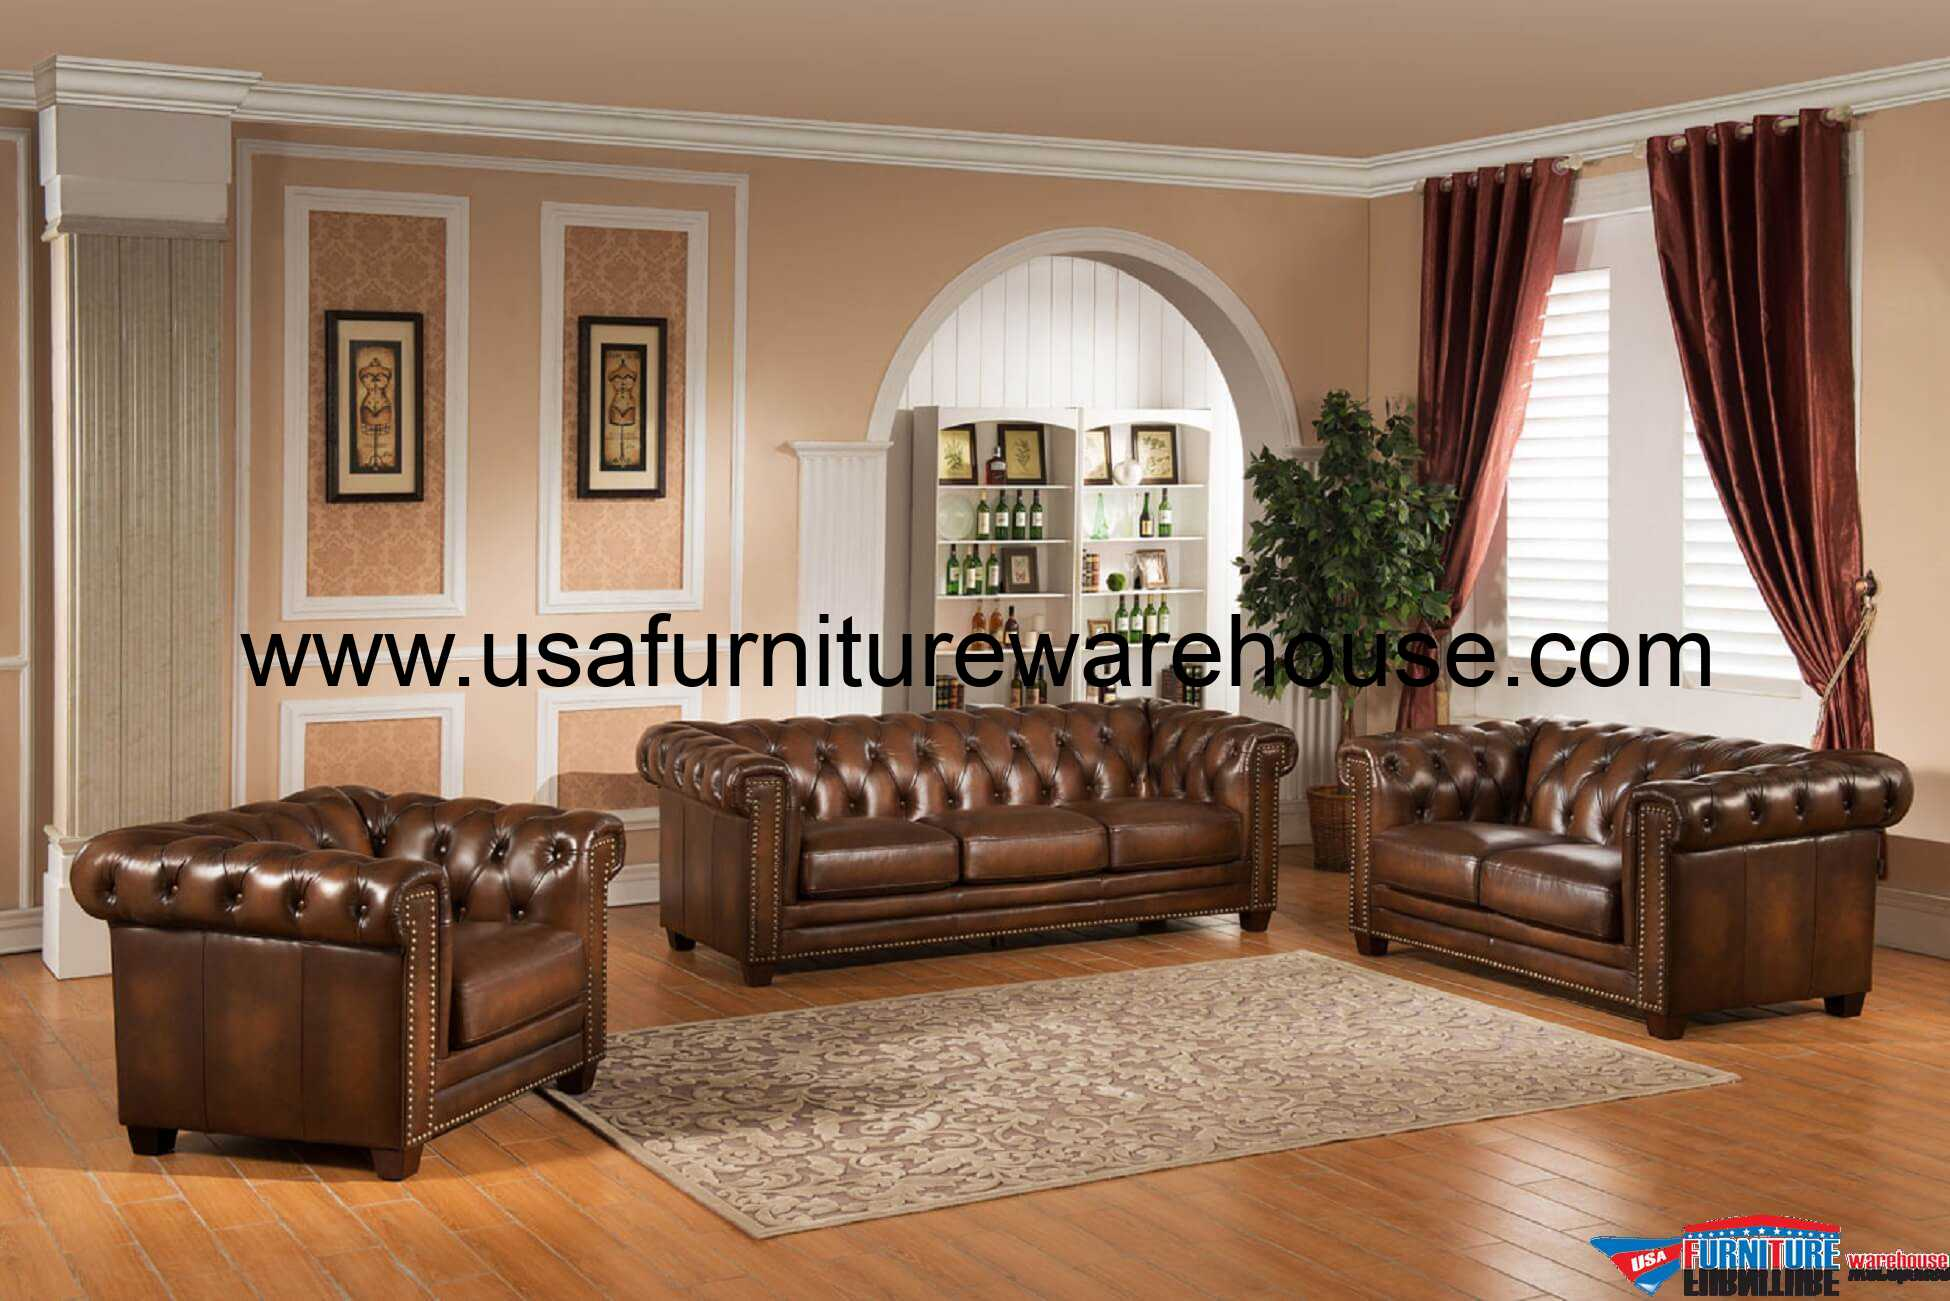 3 Piece Stanley Park Full Leather Sofa Set